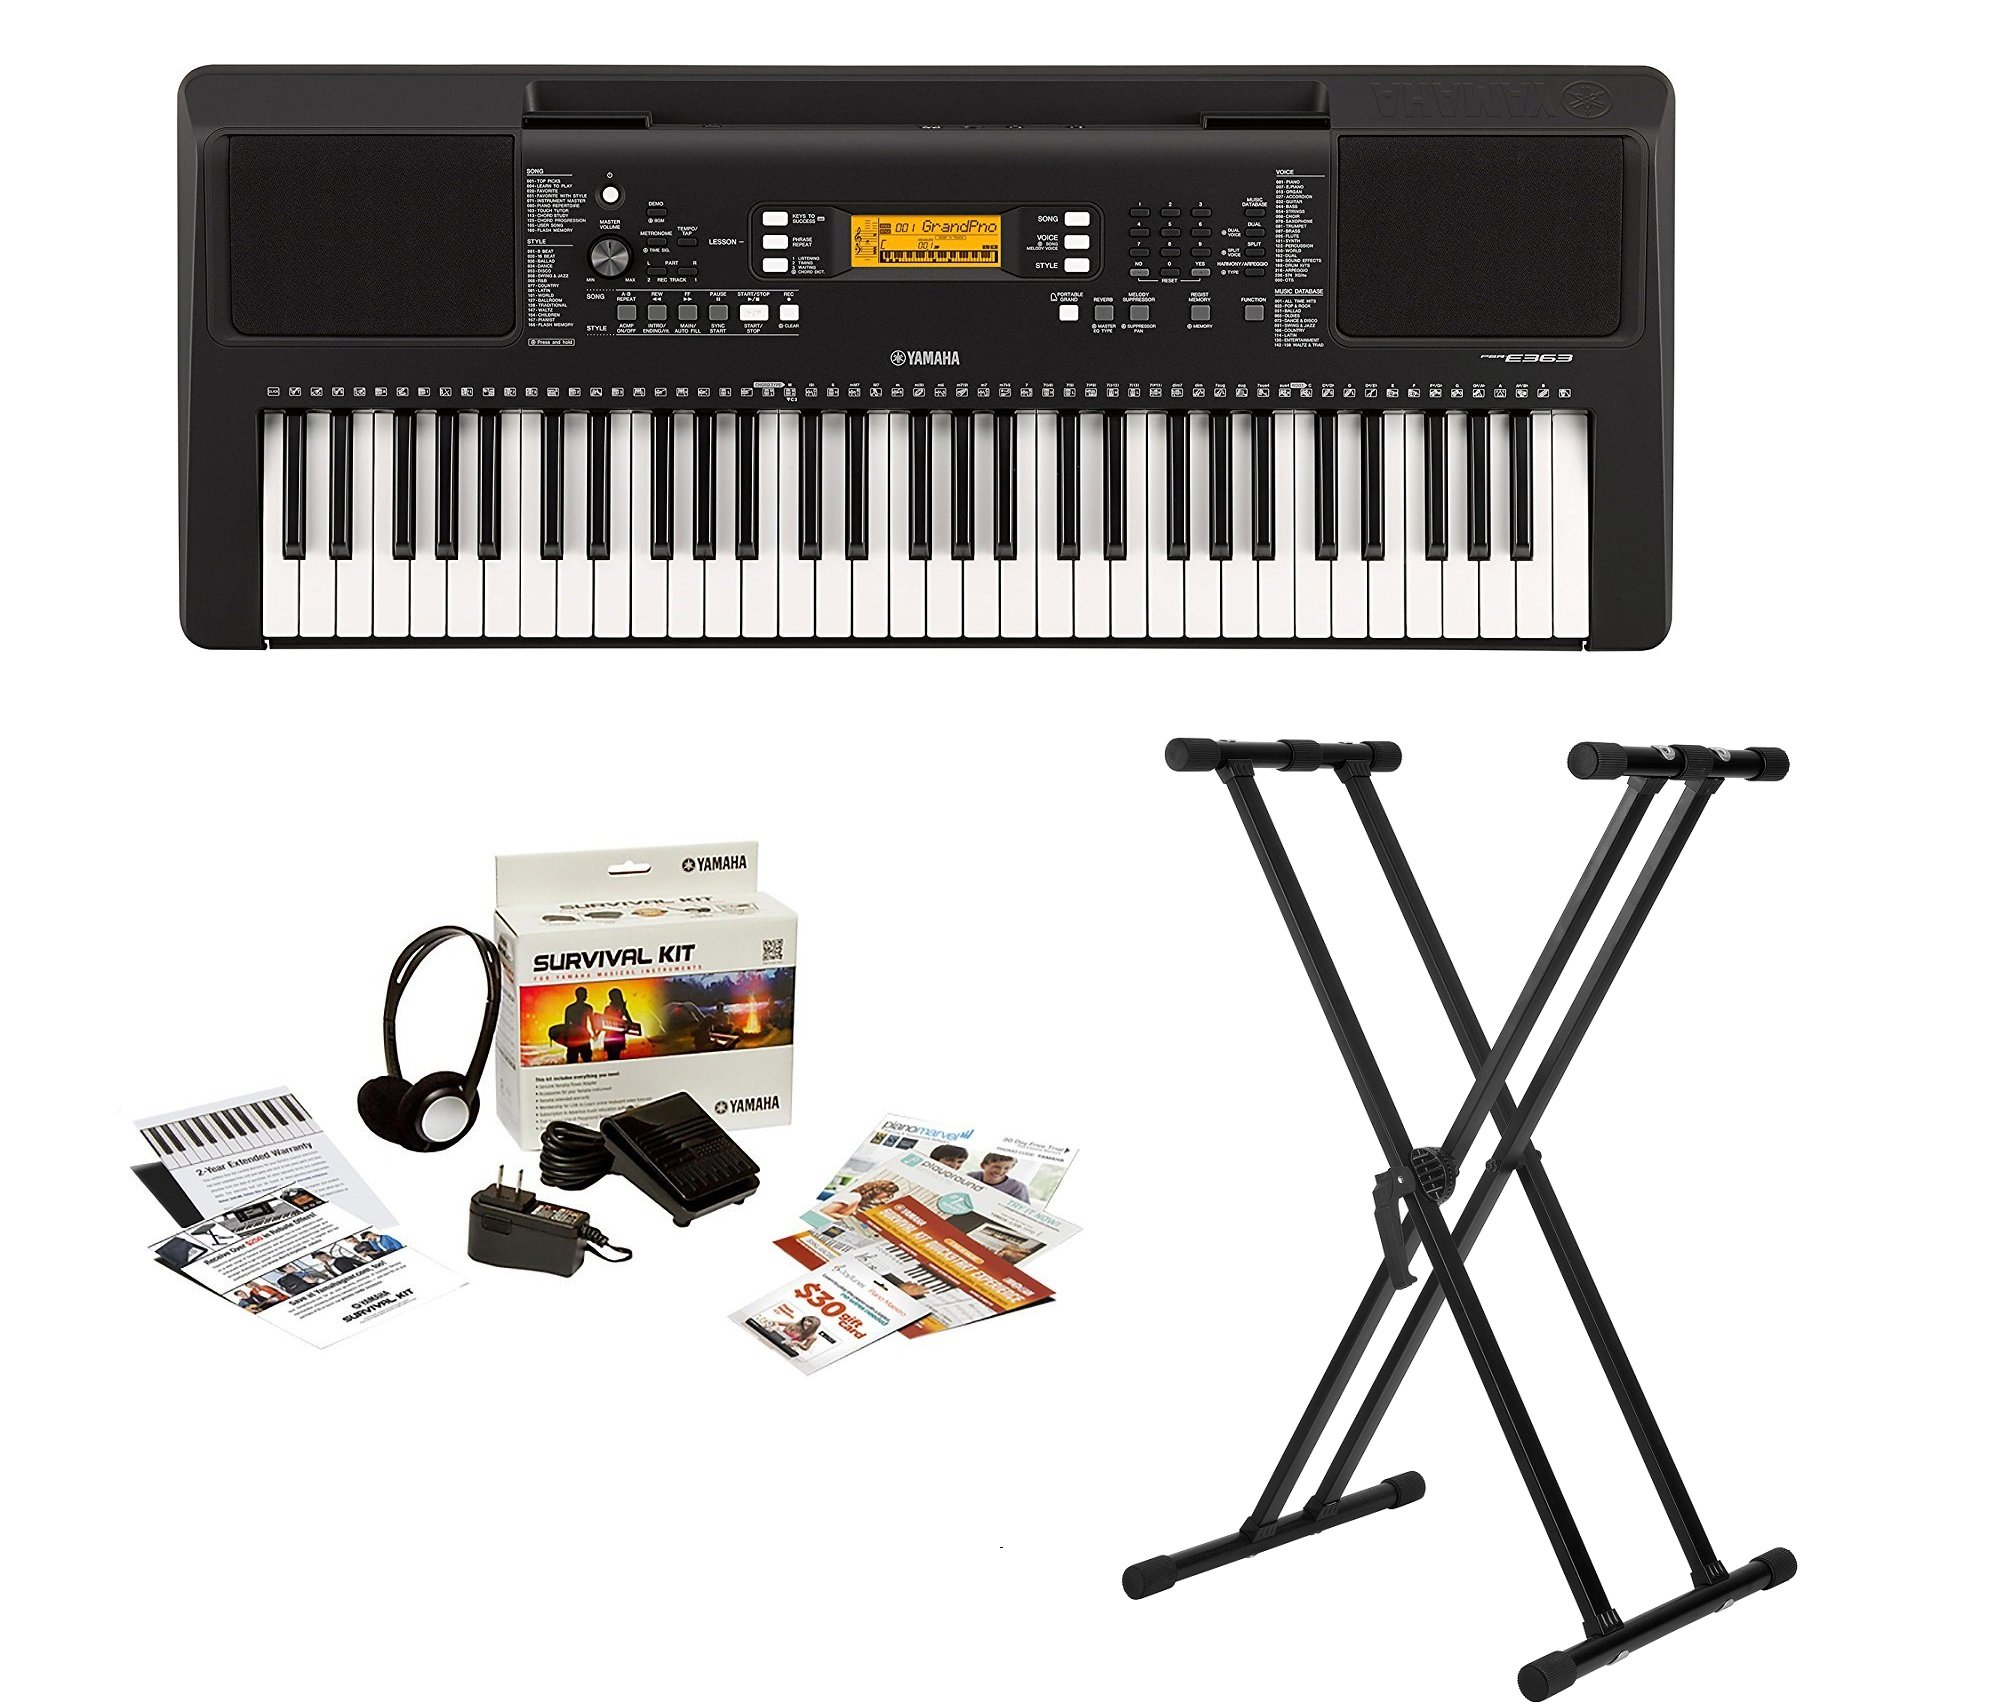 Yamaha PSRE363 61-Key Portable Keyboard with Knox stand and Survival Kit (includes power supply & 2 year warranty)